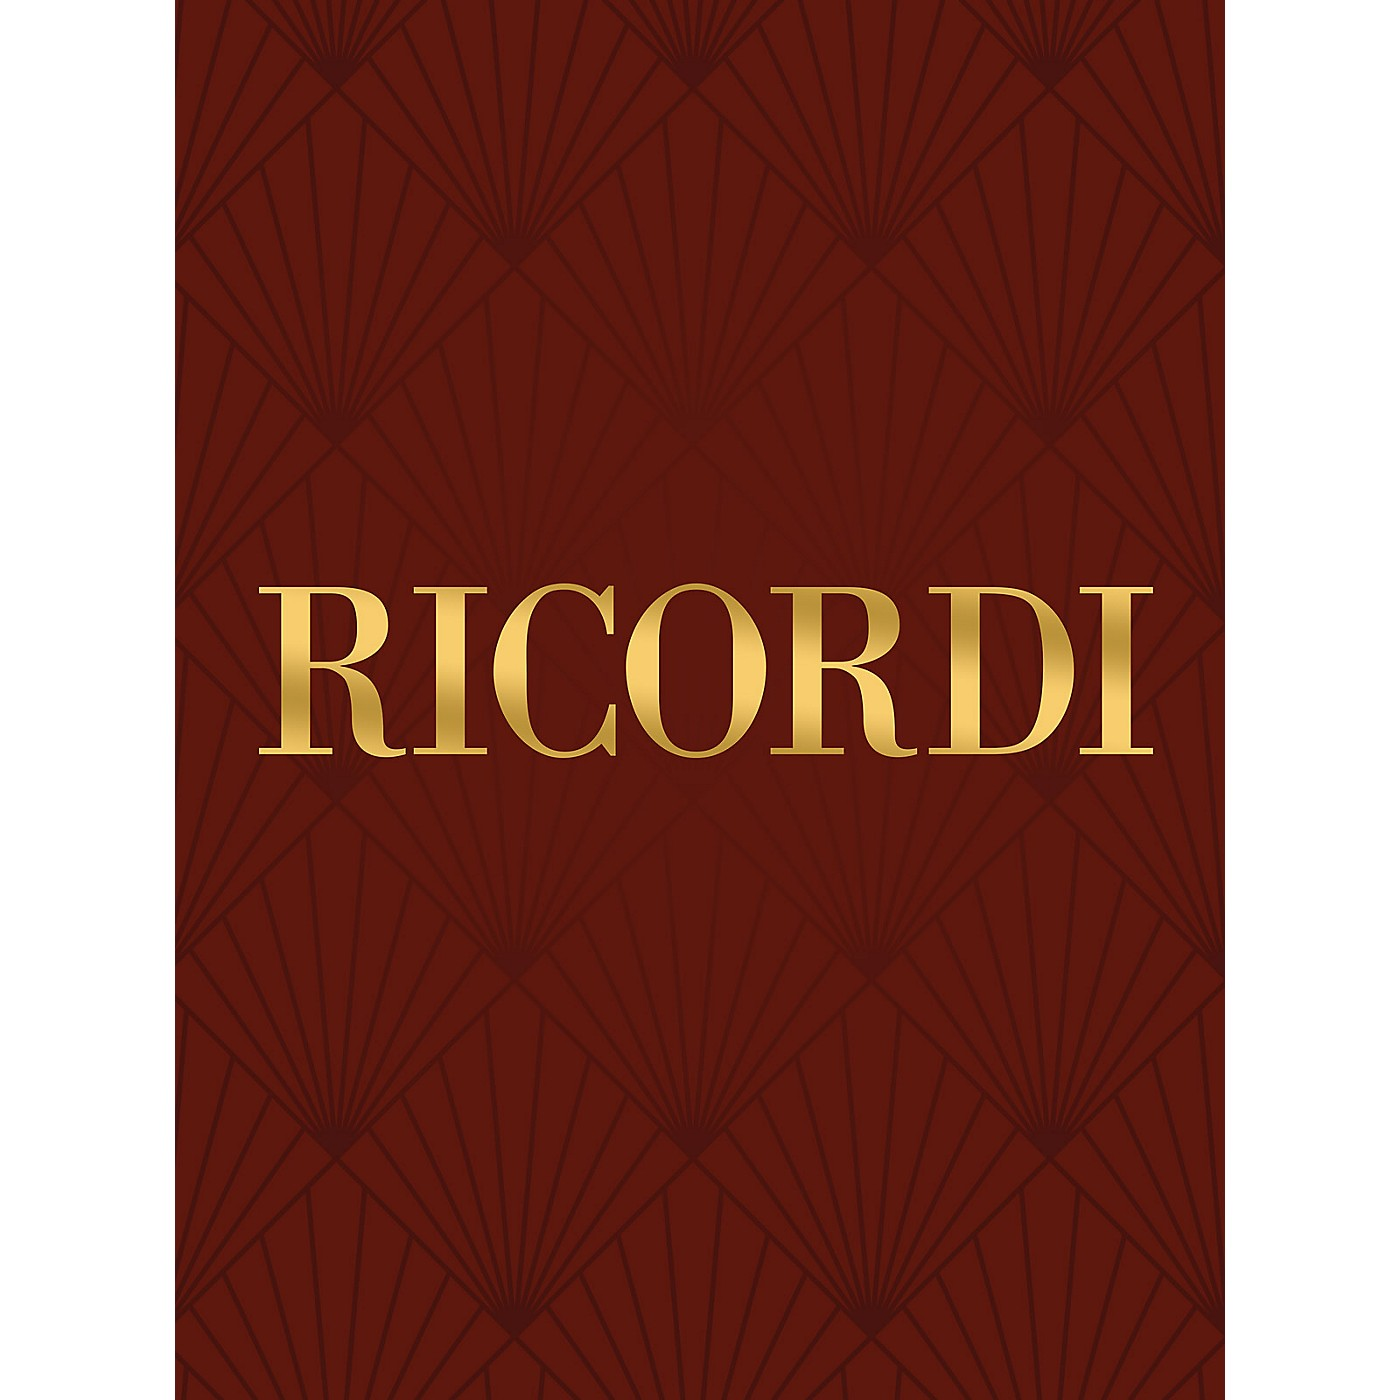 Ricordi Divertimento No. 1 in F Major Woodwind Ensemble Composed by Mozart Edited by Gernot Stepper thumbnail